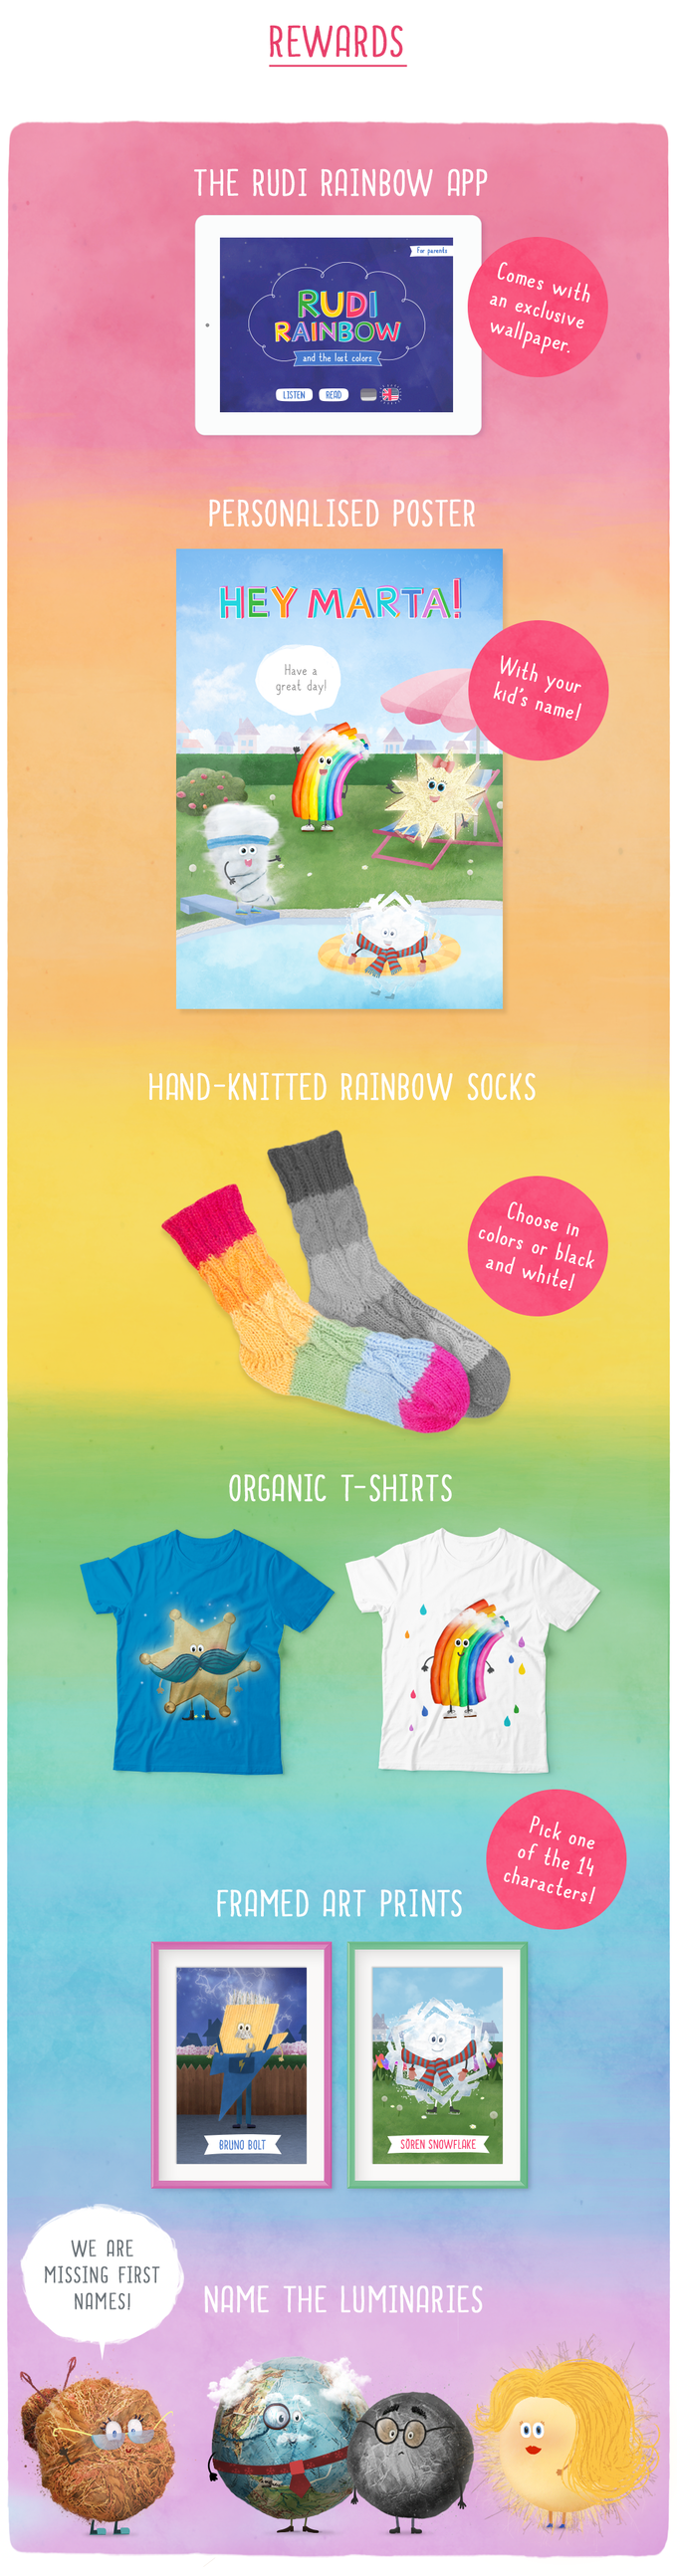 All designs except for the socks are mock-ups and not the final product.